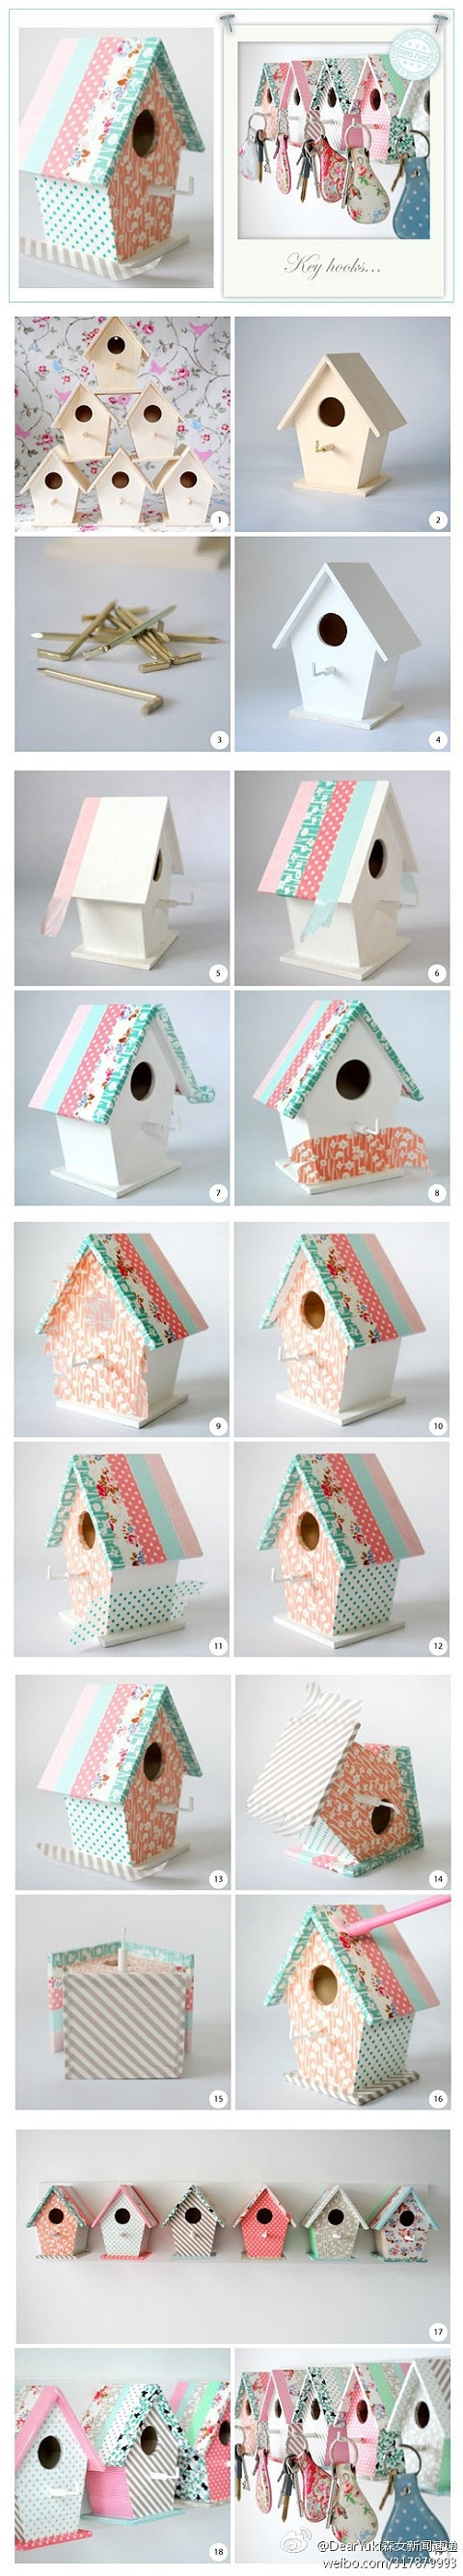 Little House Key Holders (Glue fabric to wooden birdhouse forms)